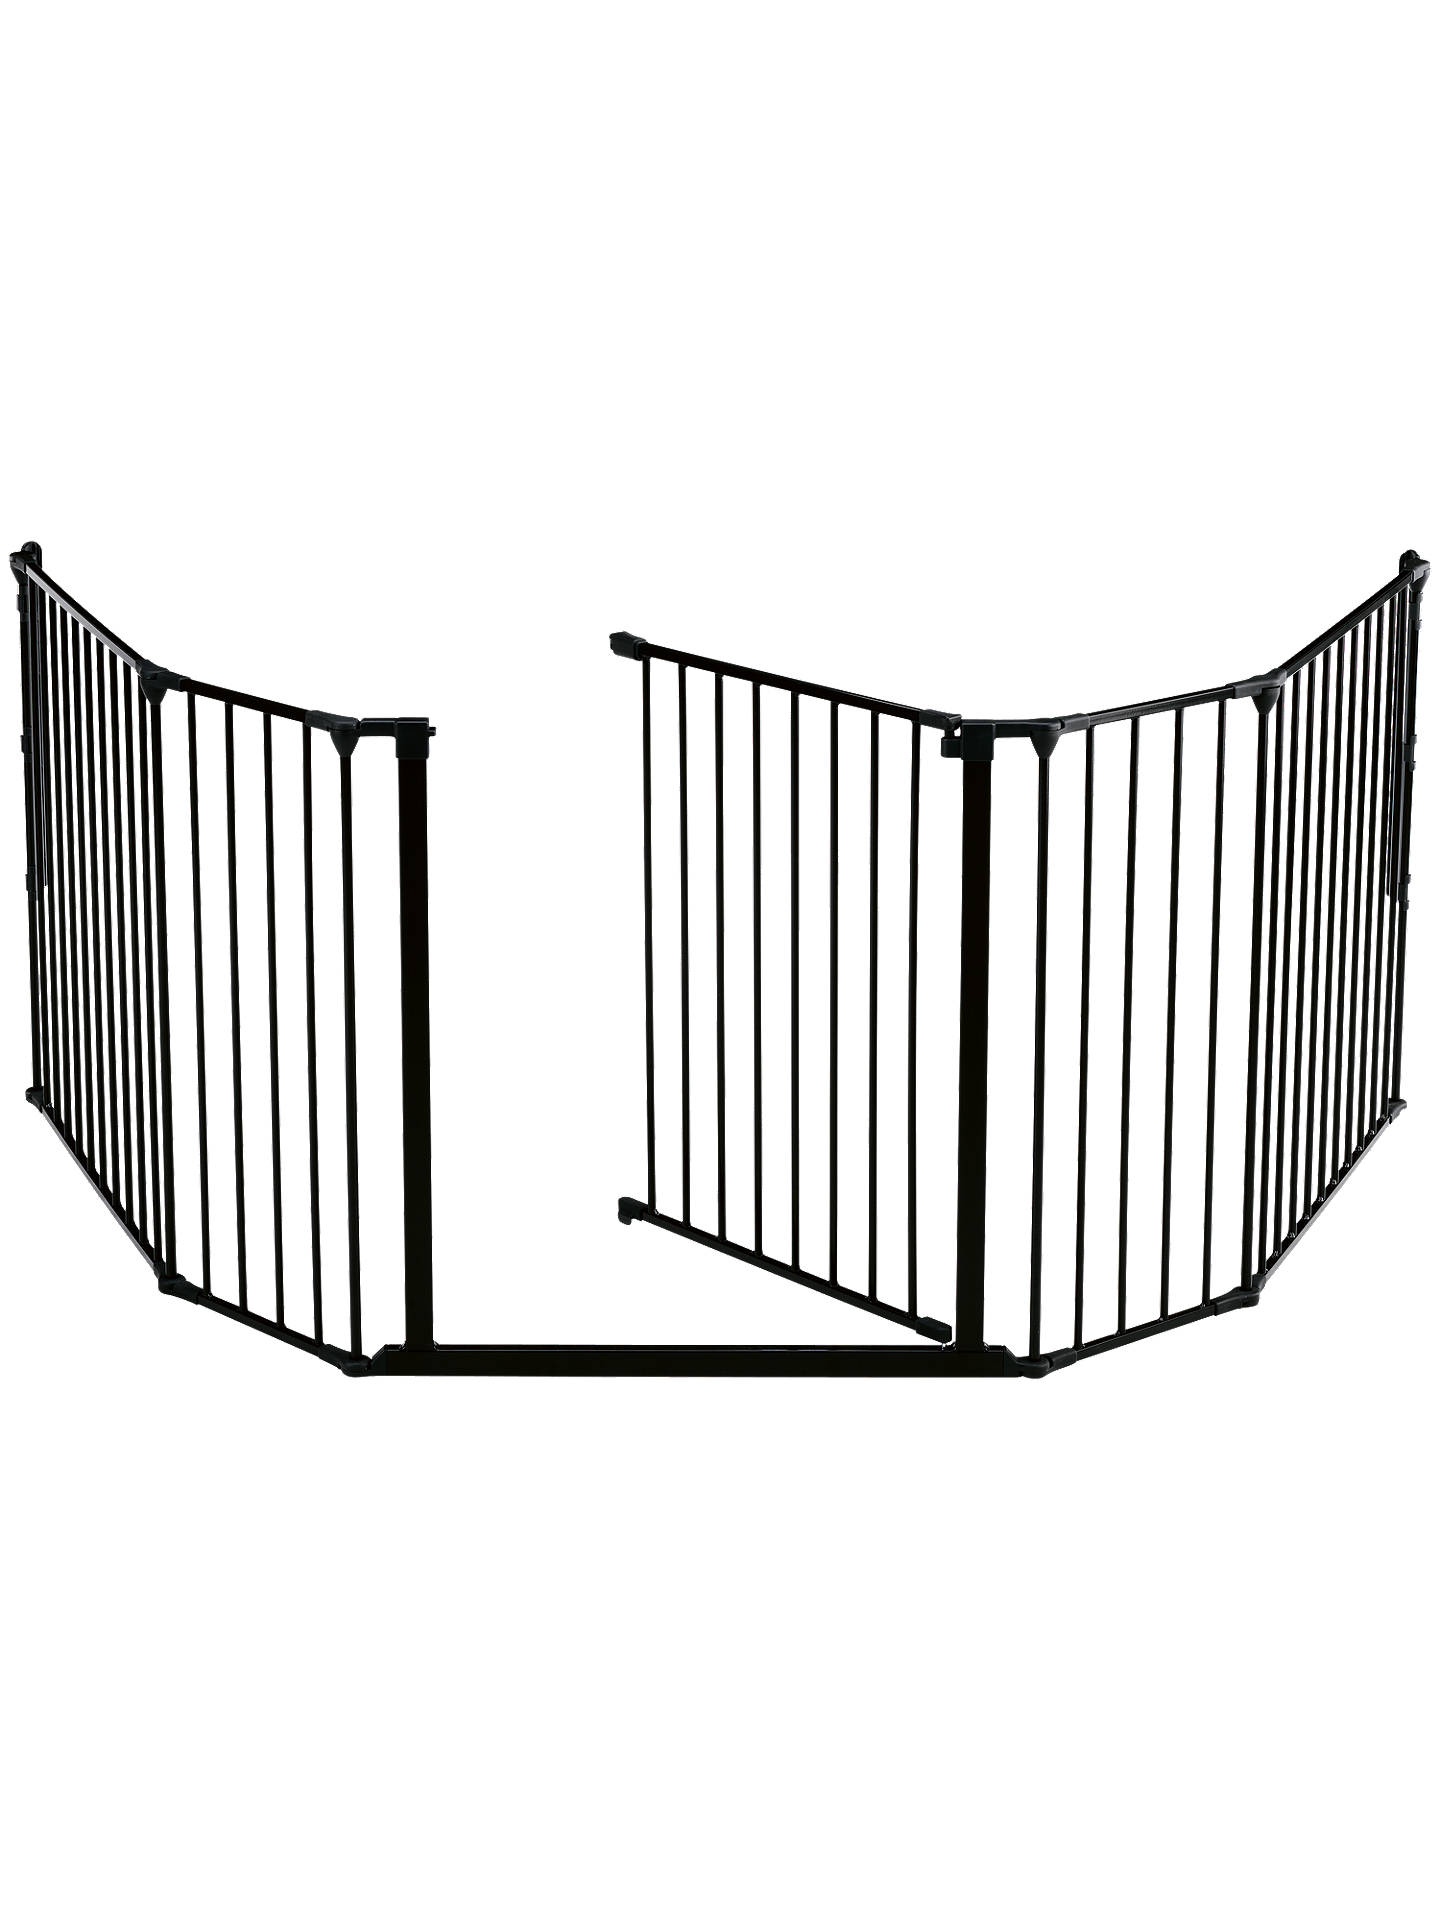 BuyBabyDan XL Fire Surround/Configure Gate, Black Online at johnlewis.com